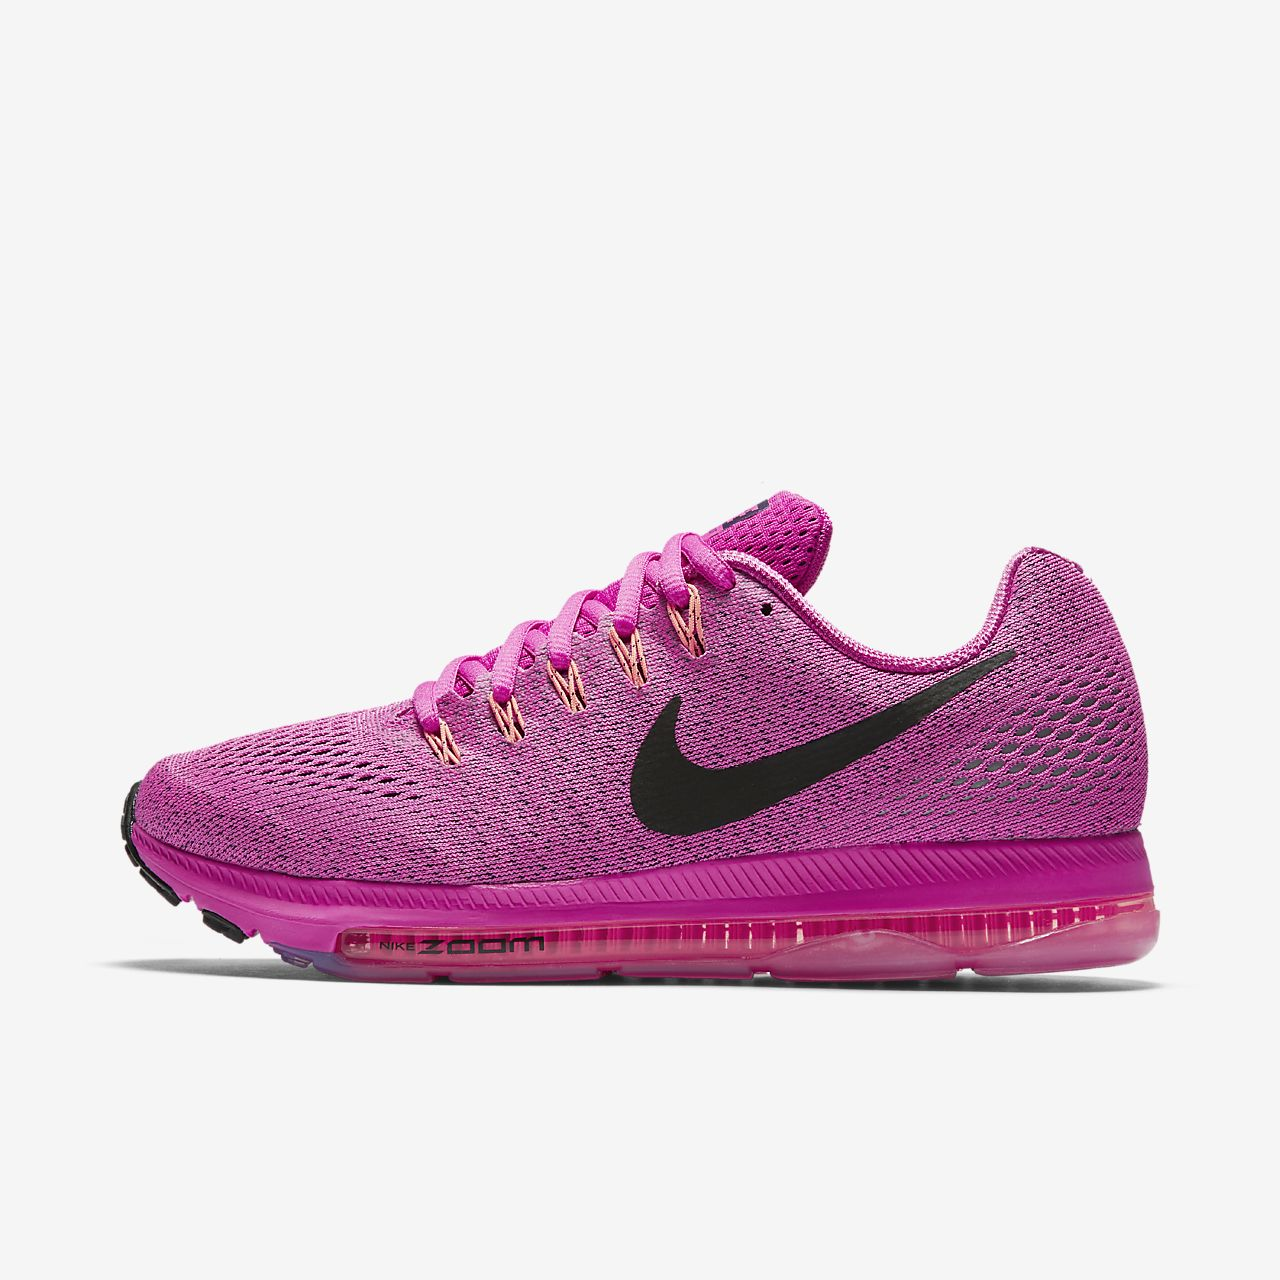 NIKE WOMENS ZOOM ALL OUT LOW UK SIZE 3 - 5.5 RUNNING TRAINER SHOE FIRE PINK NEW